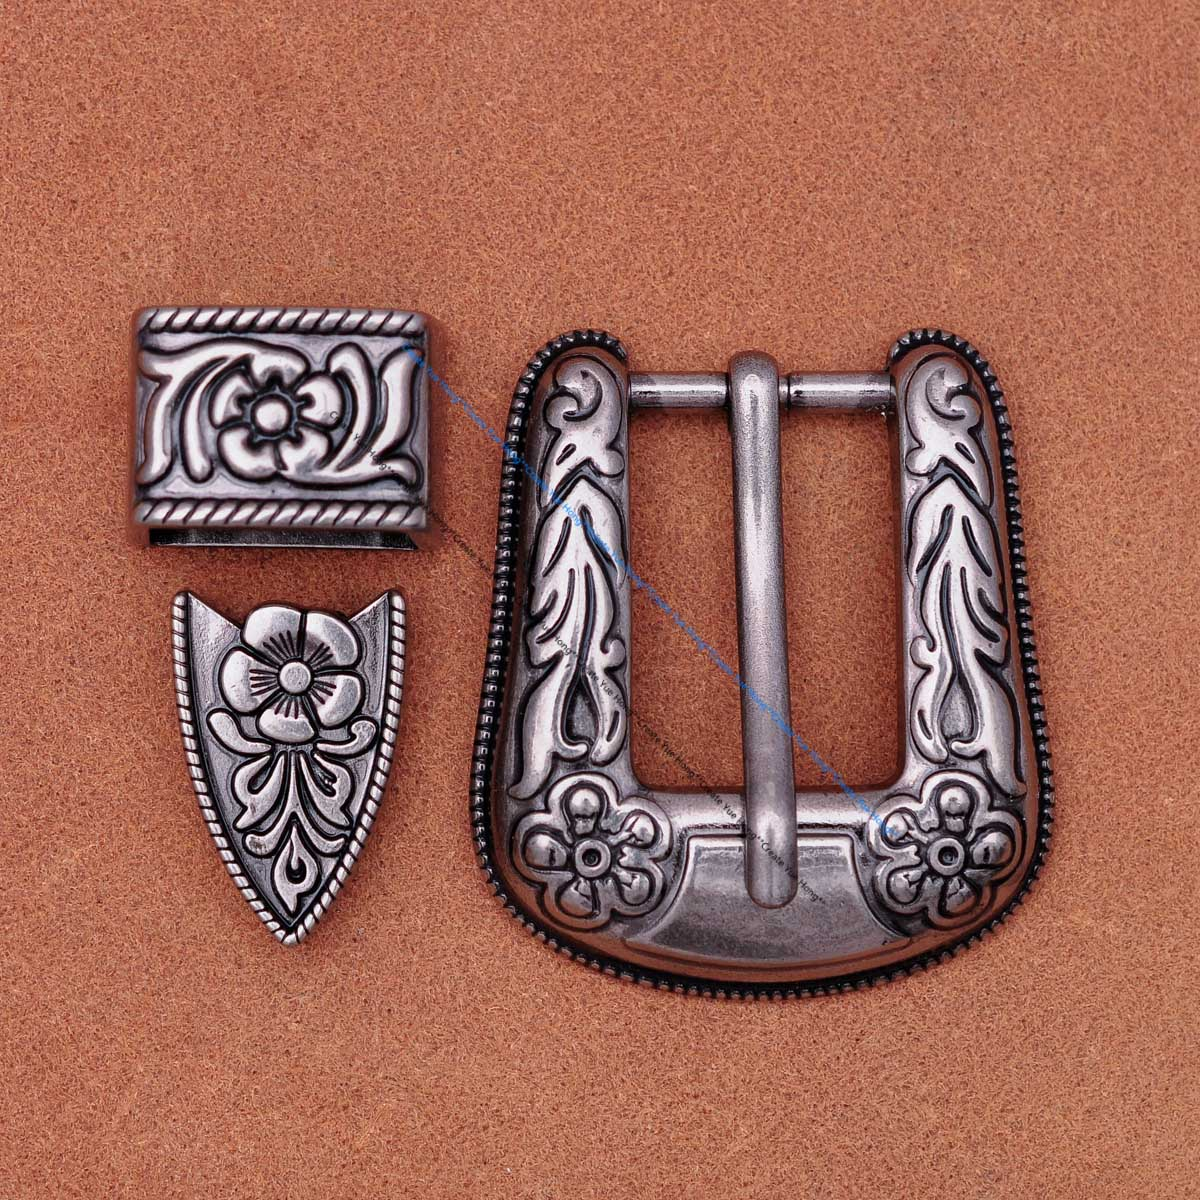 Unisex 's Western Cowboy Cowgirl Rodeo Antique Silver Flower Engraved Leather Belt Buckle Fit 20mm Belt Strap